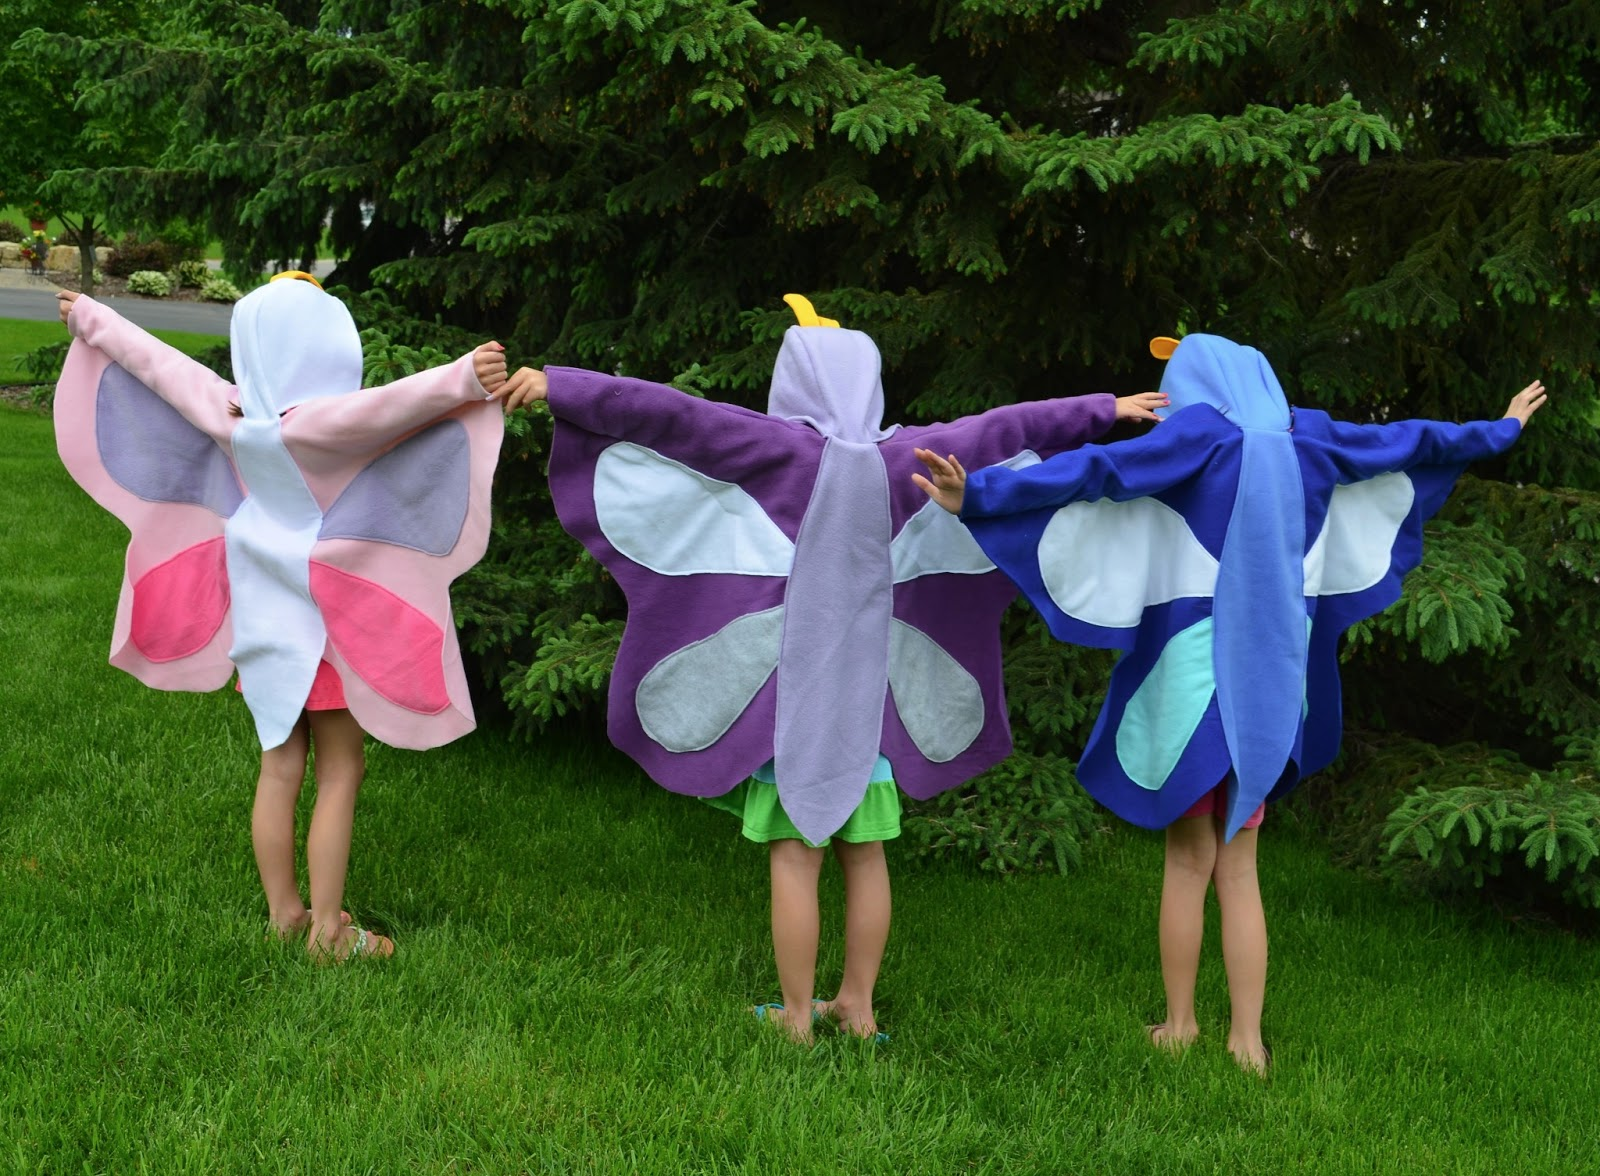 How to make butterfly costume wings - photo#19